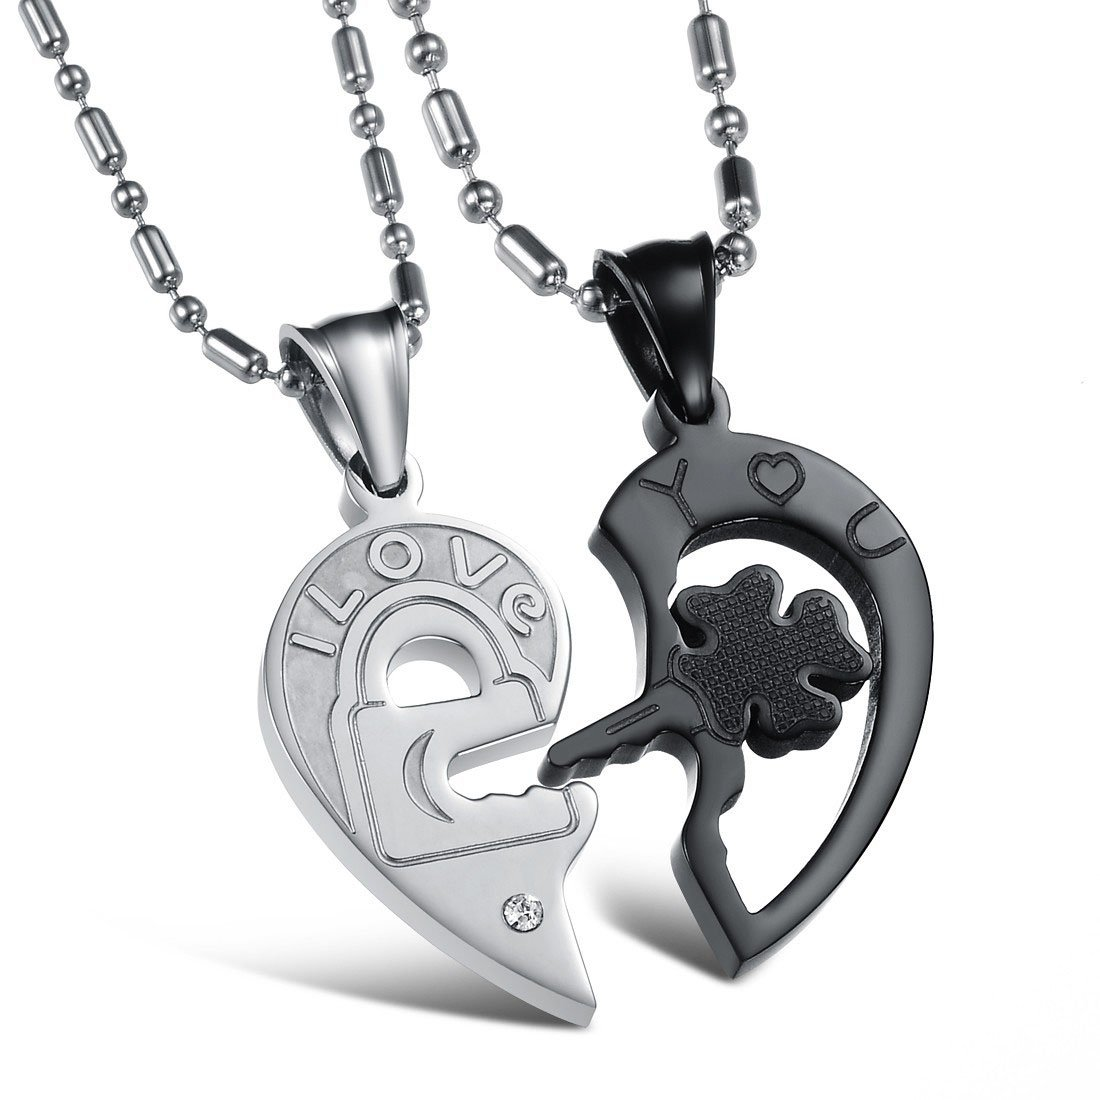 I Love You His & Hers Matching Set Titanium Key and Lock Heart Pendant Couple Necklaces(one pair) Yumily TGXL102002-1